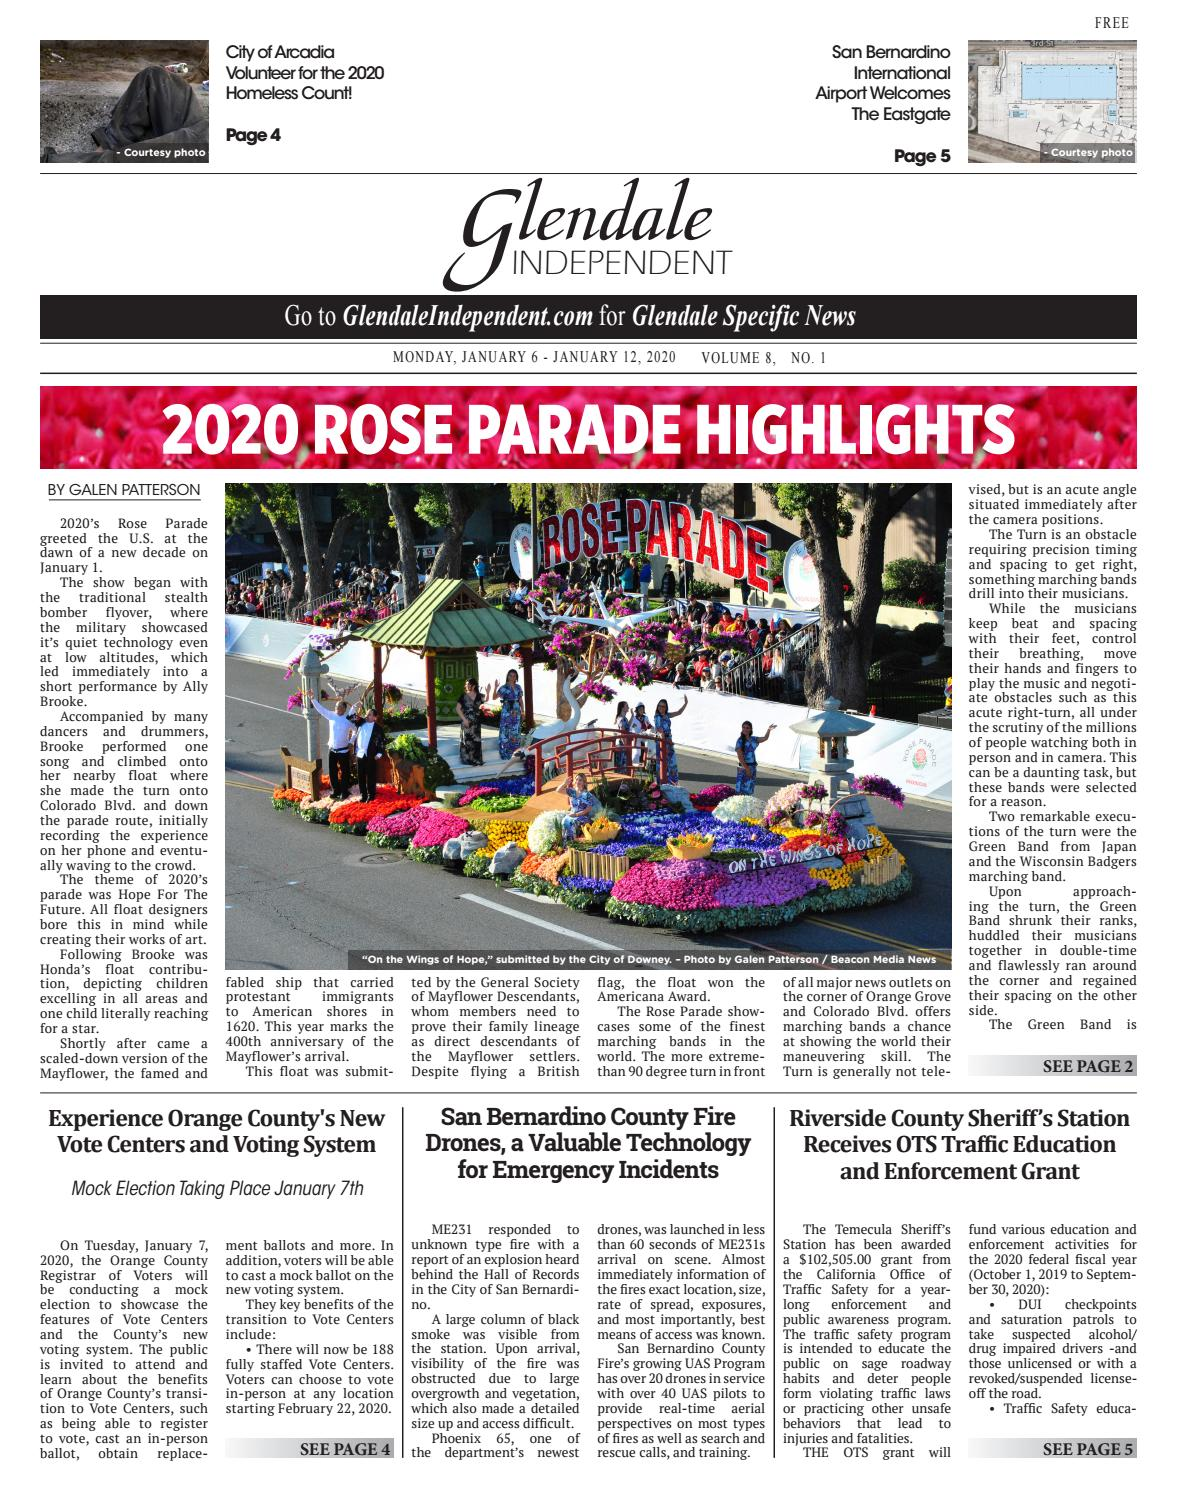 Checkpoints In Downey Area Christmas 2020 Glendale Independent   1/6/2020 by Beacon Media News   issuu